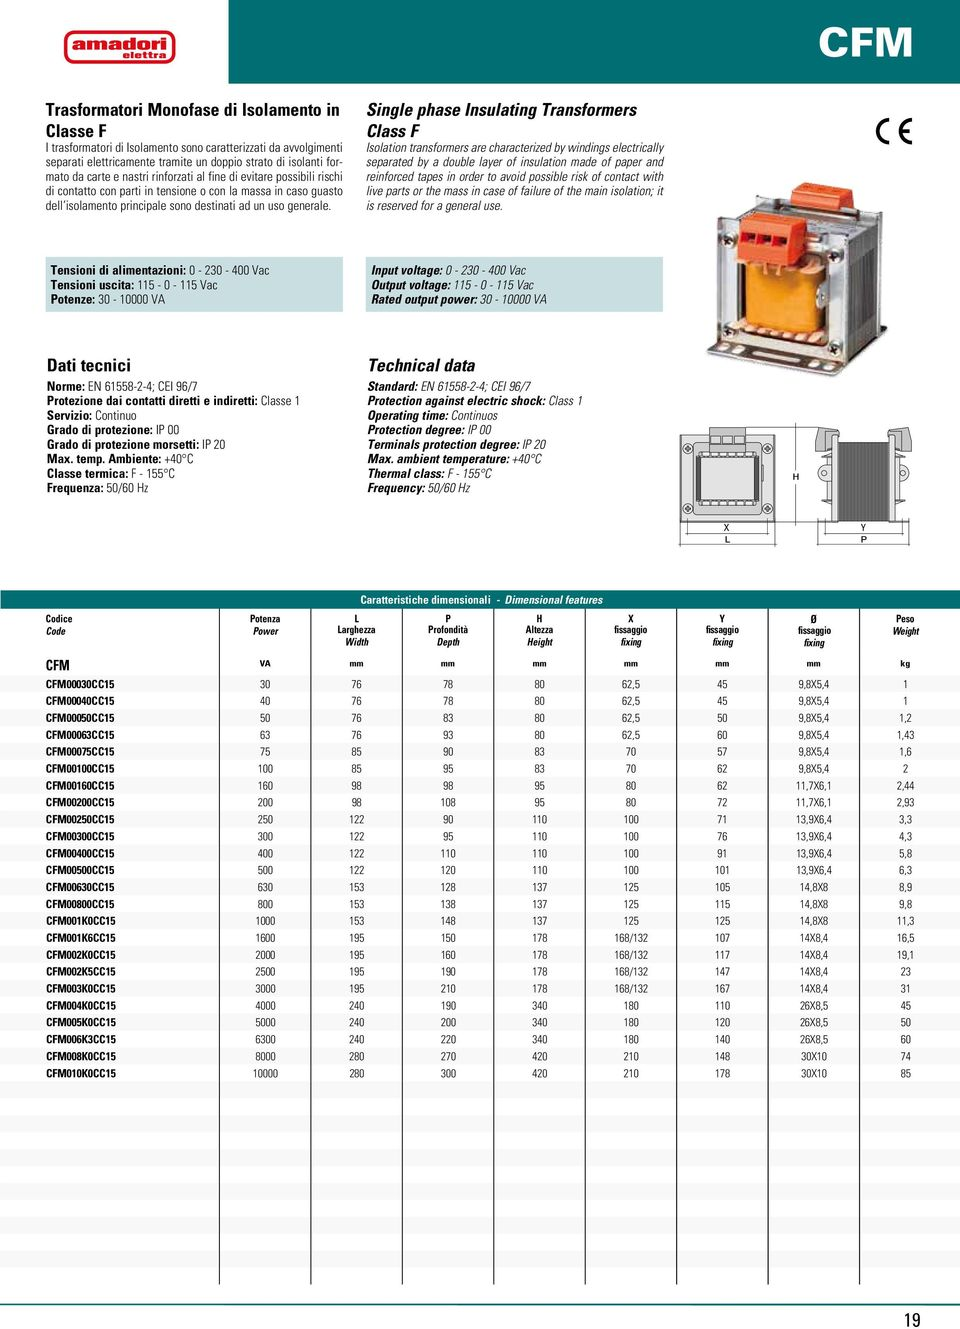 Single phase Insulating Transformers Class F Isolation transformers are characterized by windings electrically separated by a double layer of insulation made of paper and reinforced tapes in order to